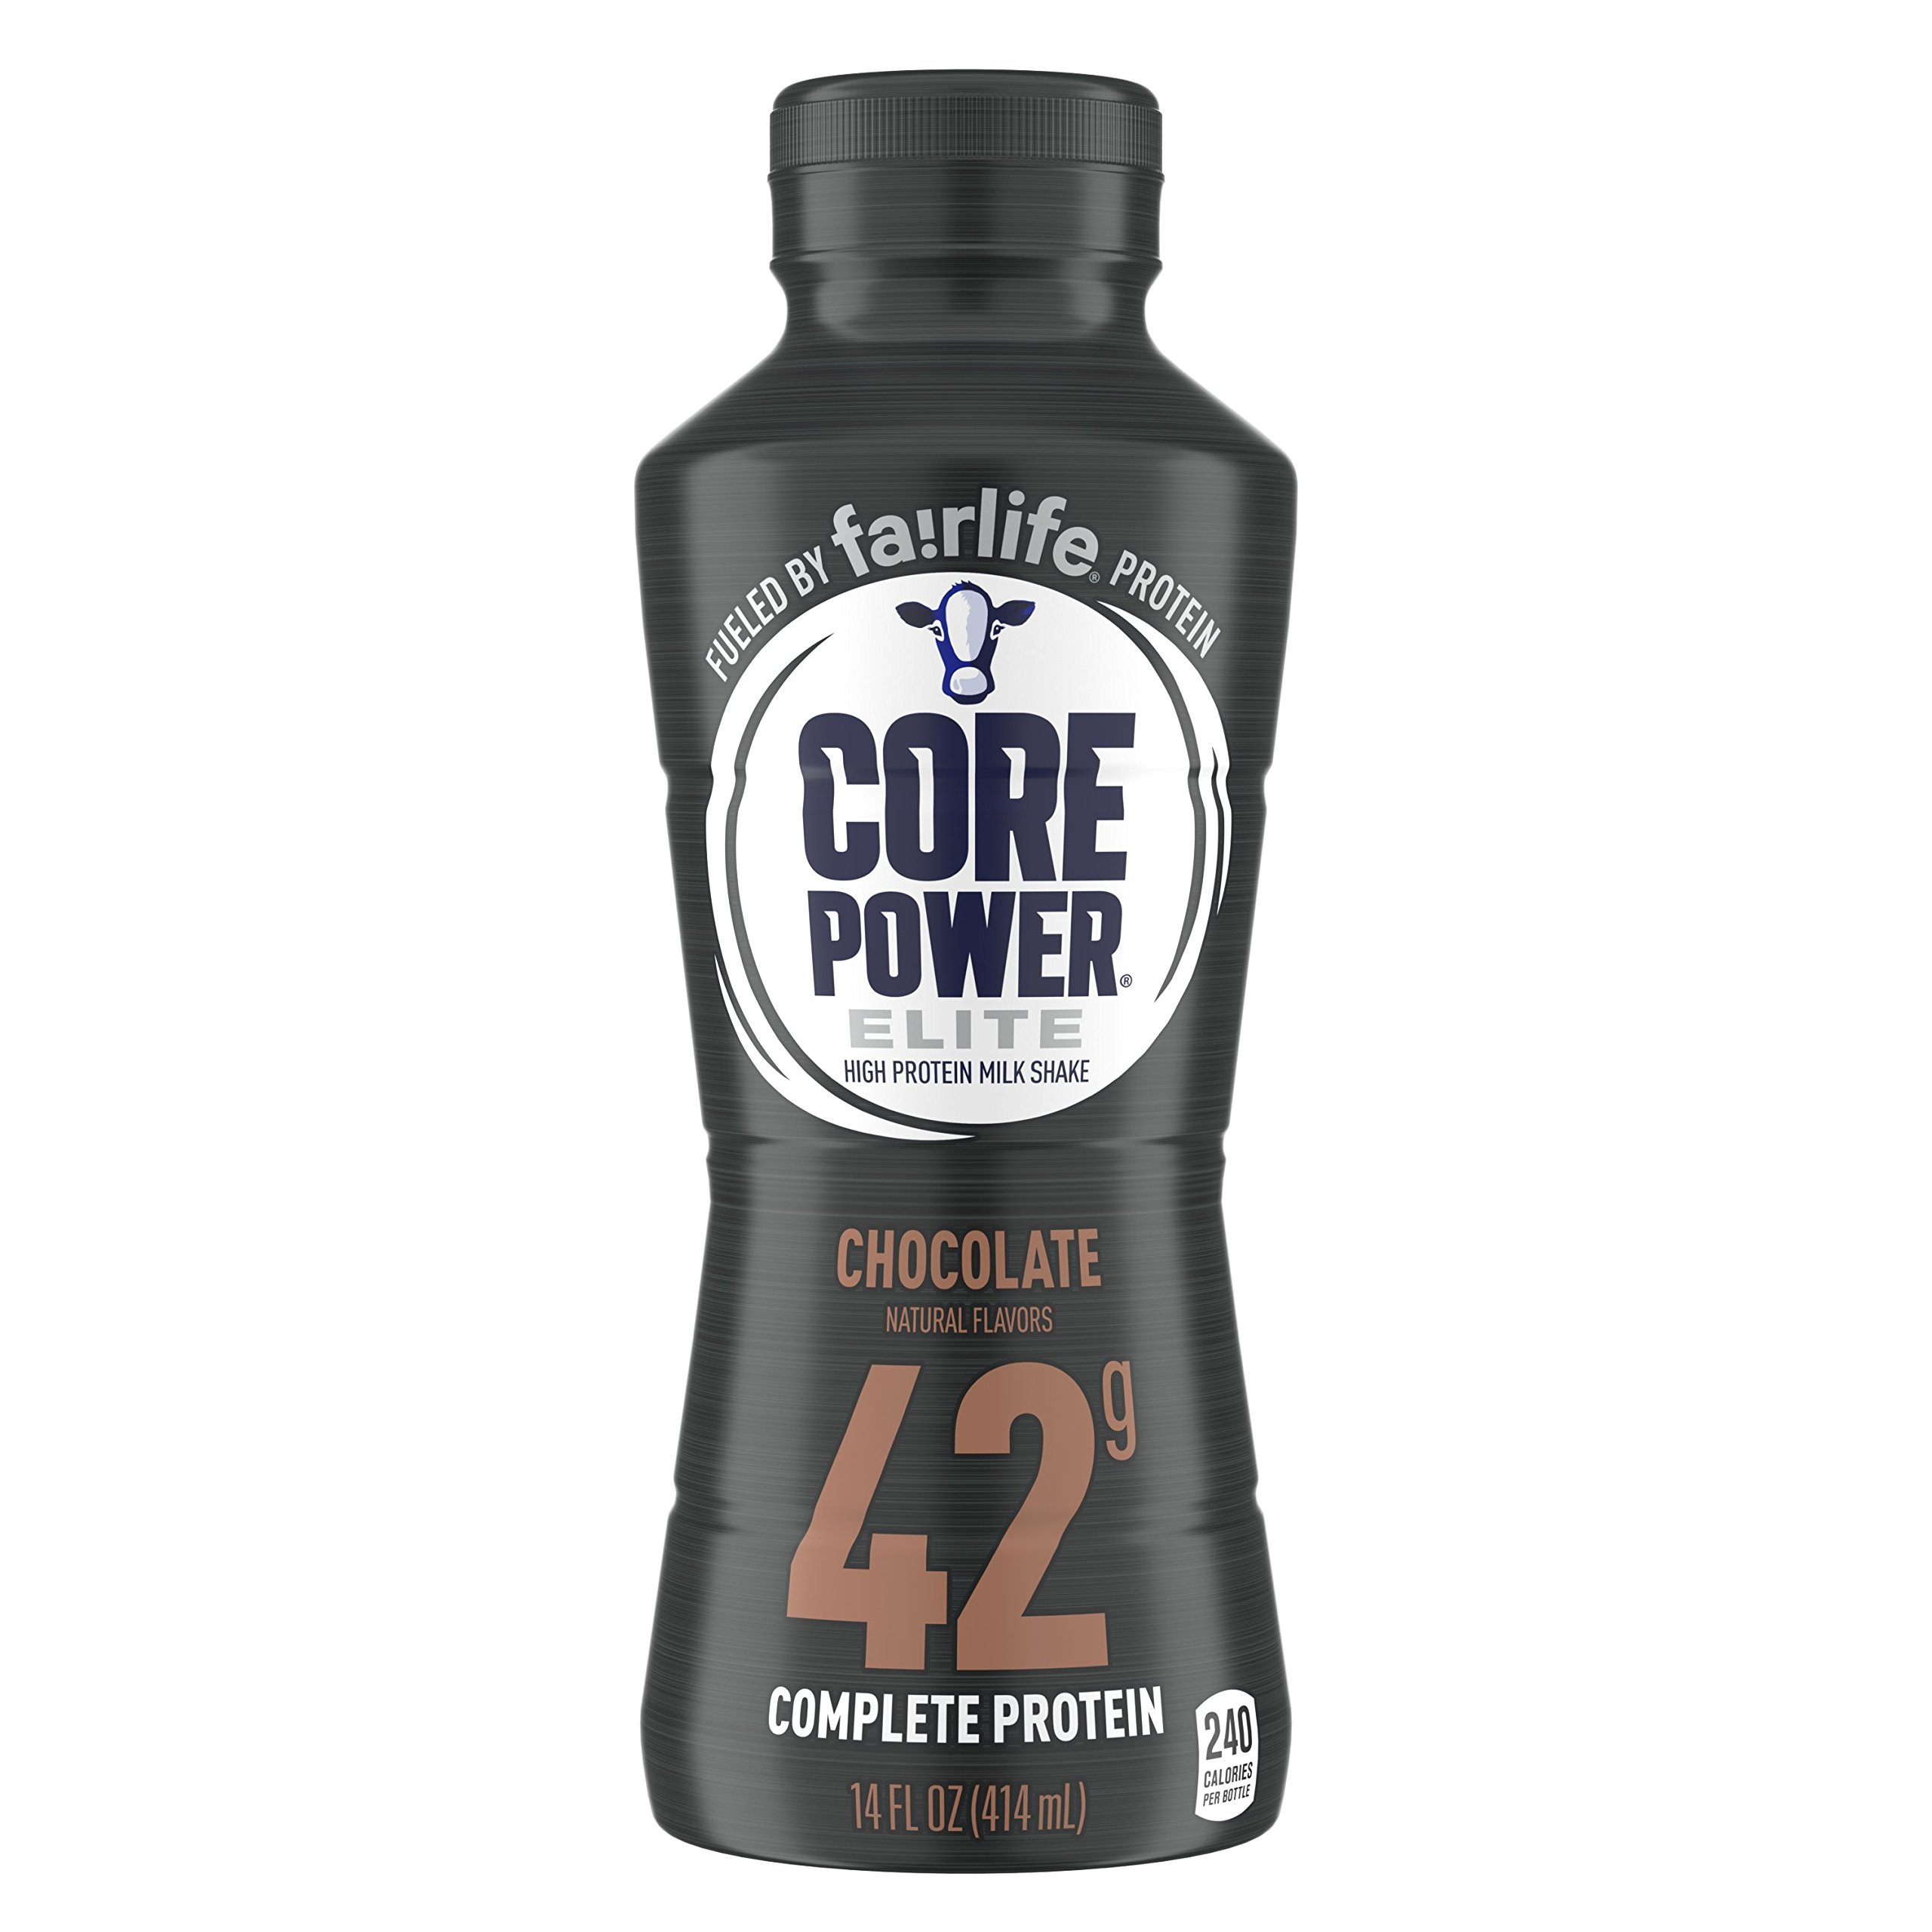 fairlife Core Power Elite High Protein (42g) Milk Shake, Chocolate, 14-ounce bottles 12 Count